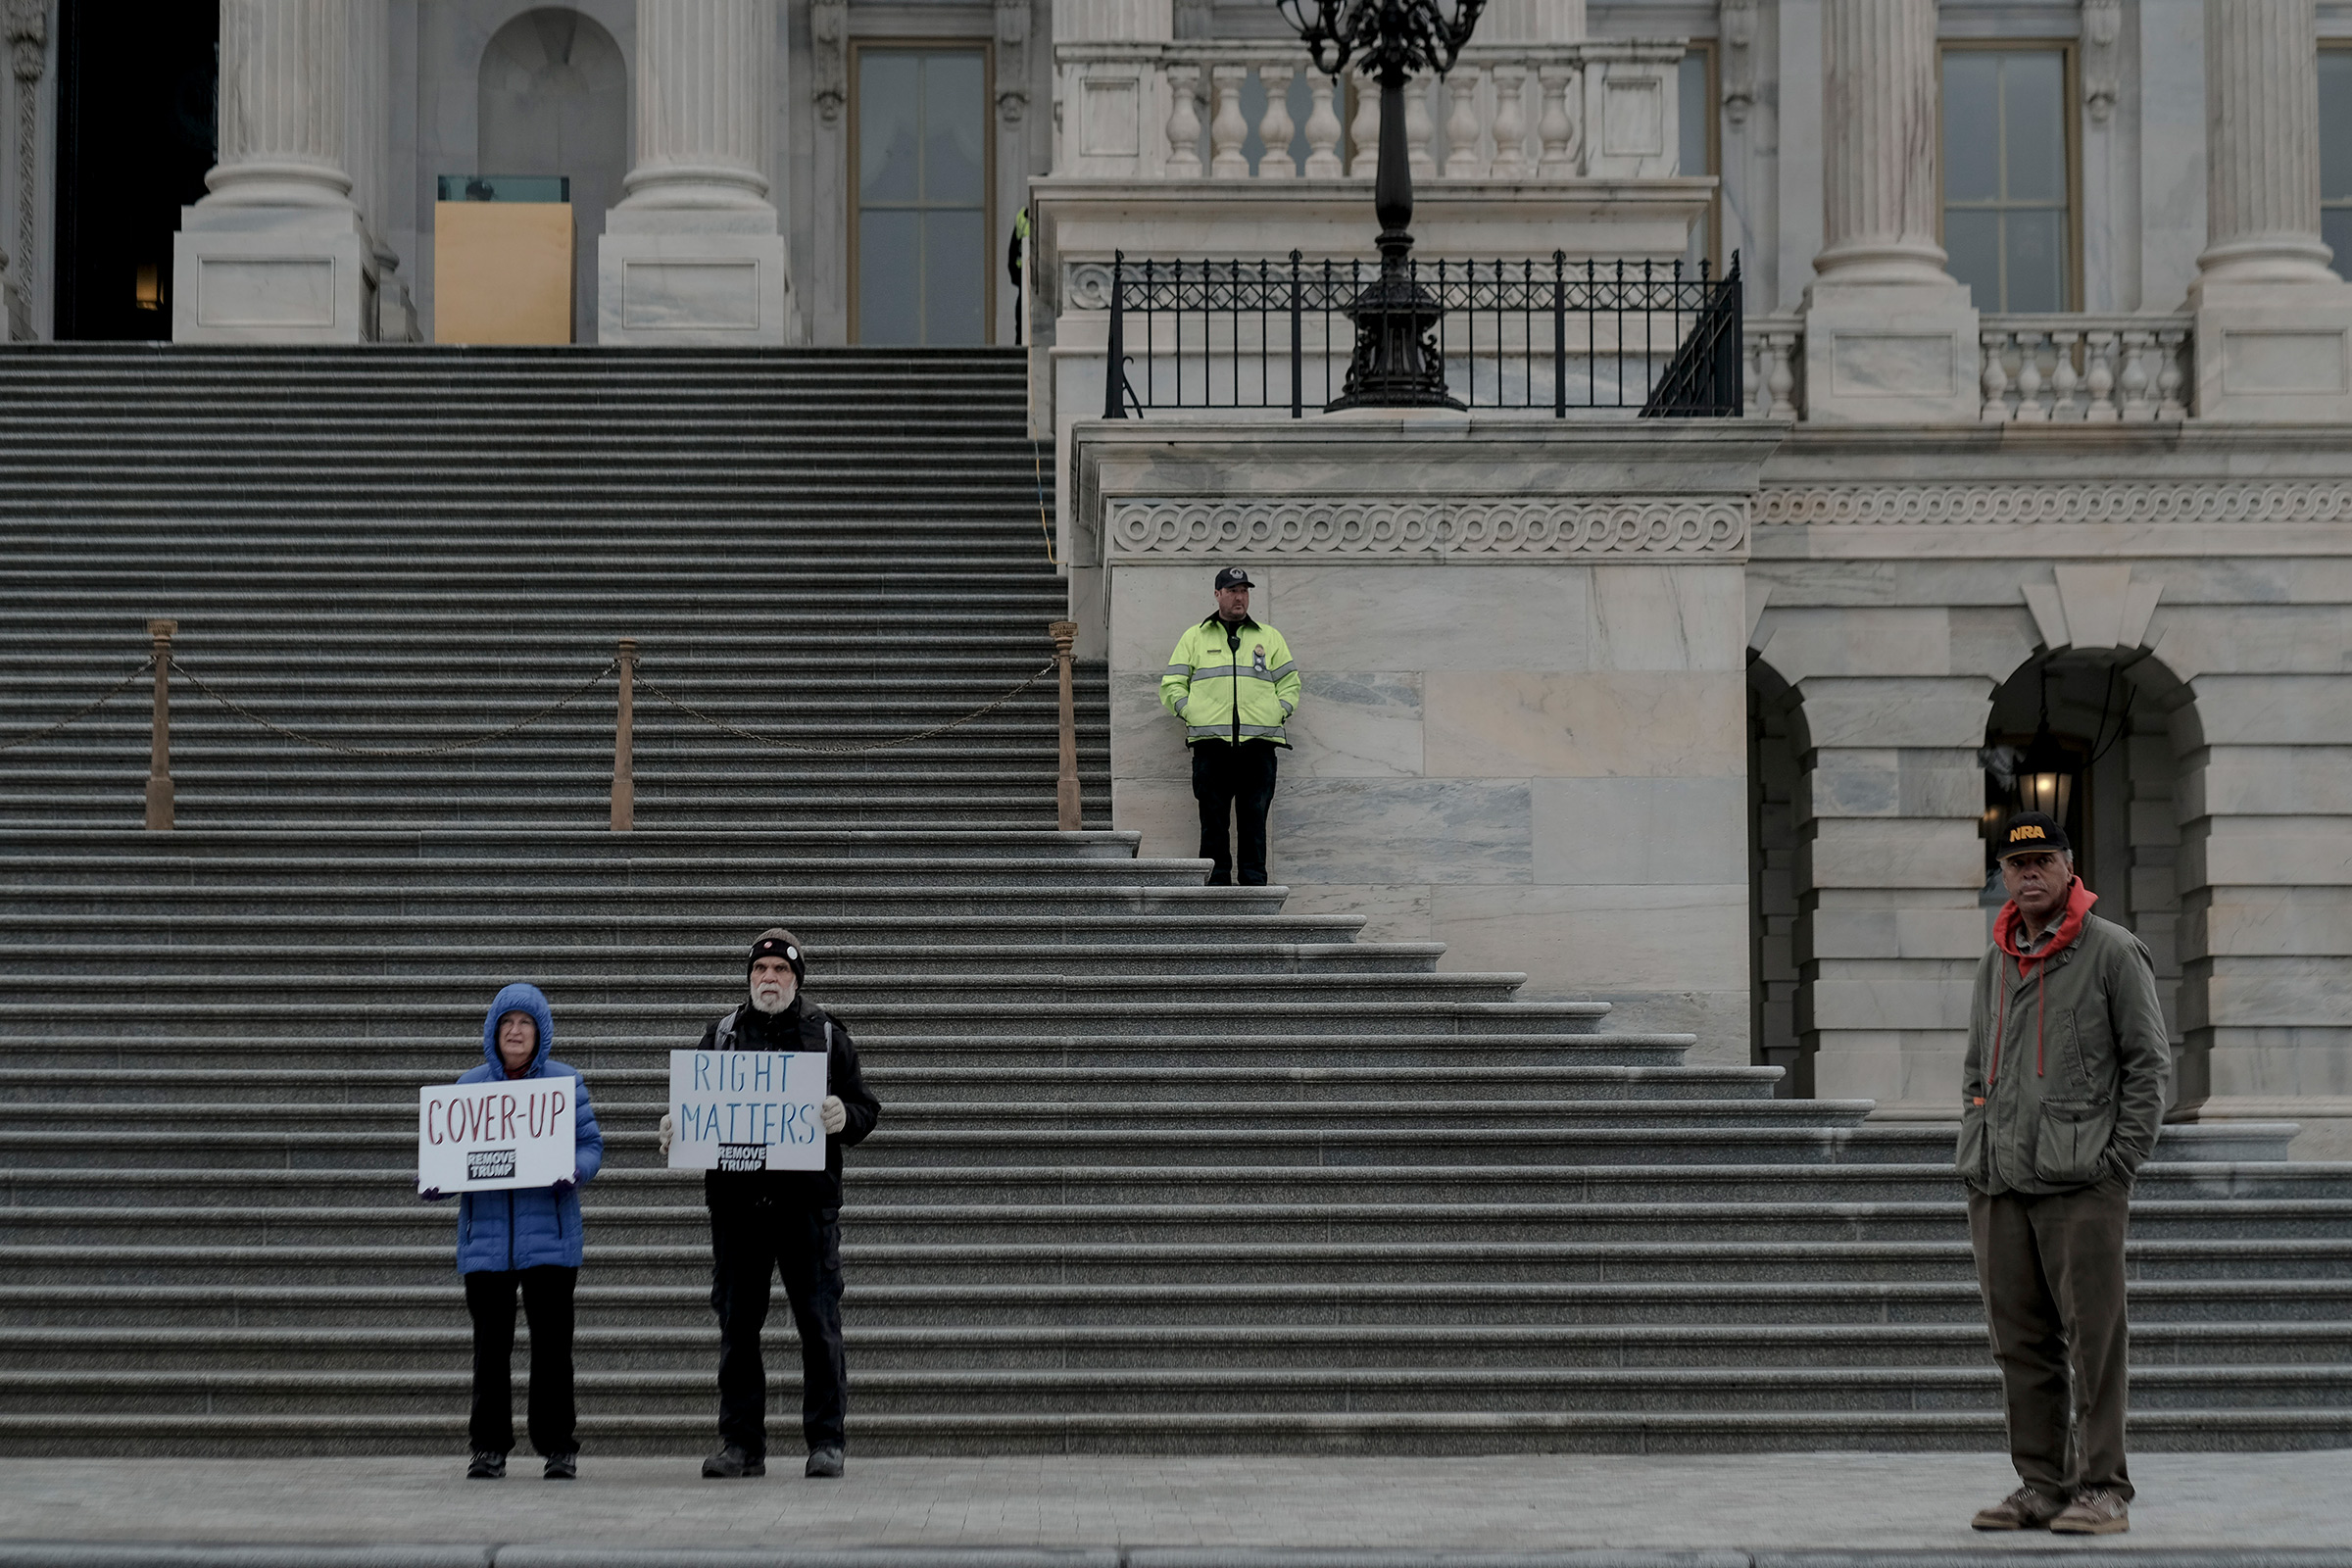 A few protestors demonstrate outside the senate chamber during the impeachment trial Saturday morning in Washington, D.C., on Jan. 25, 2020.